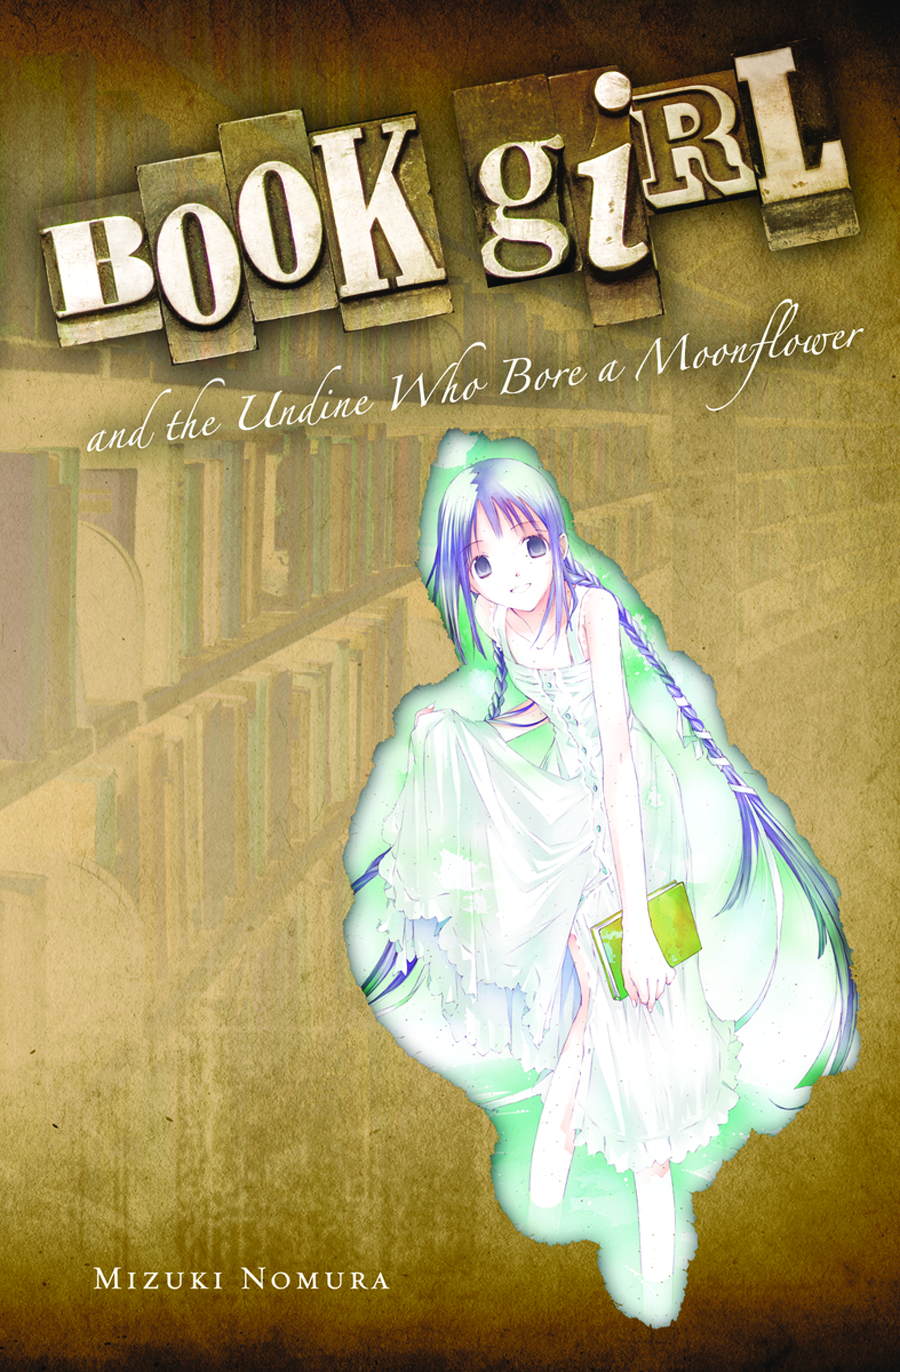 BOOK GIRL & UNDINE WHO BORE A MOONFLOWER NOVEL